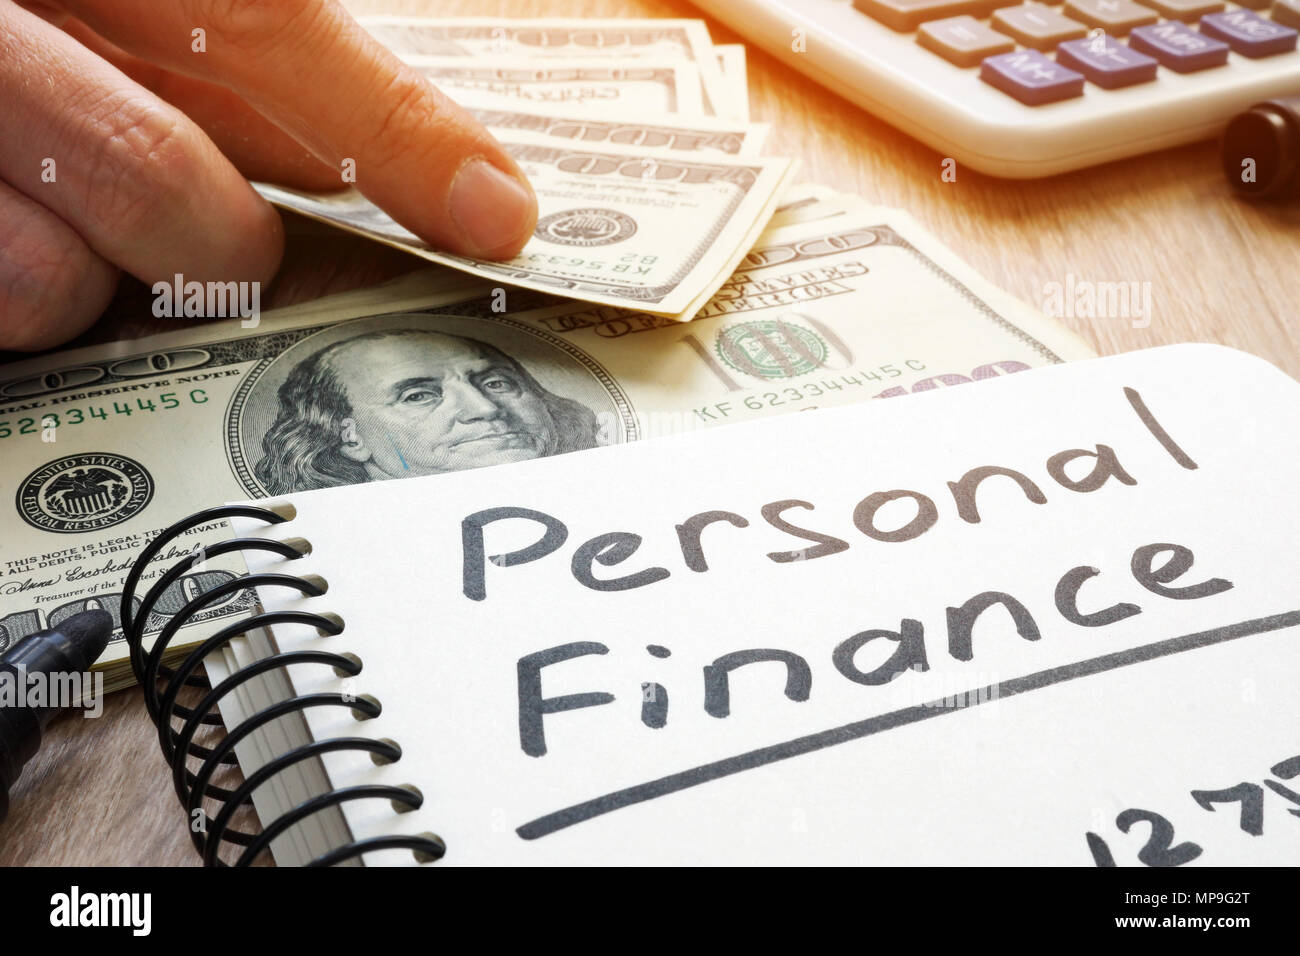 Personal Finance written in a note and money. - Stock Image